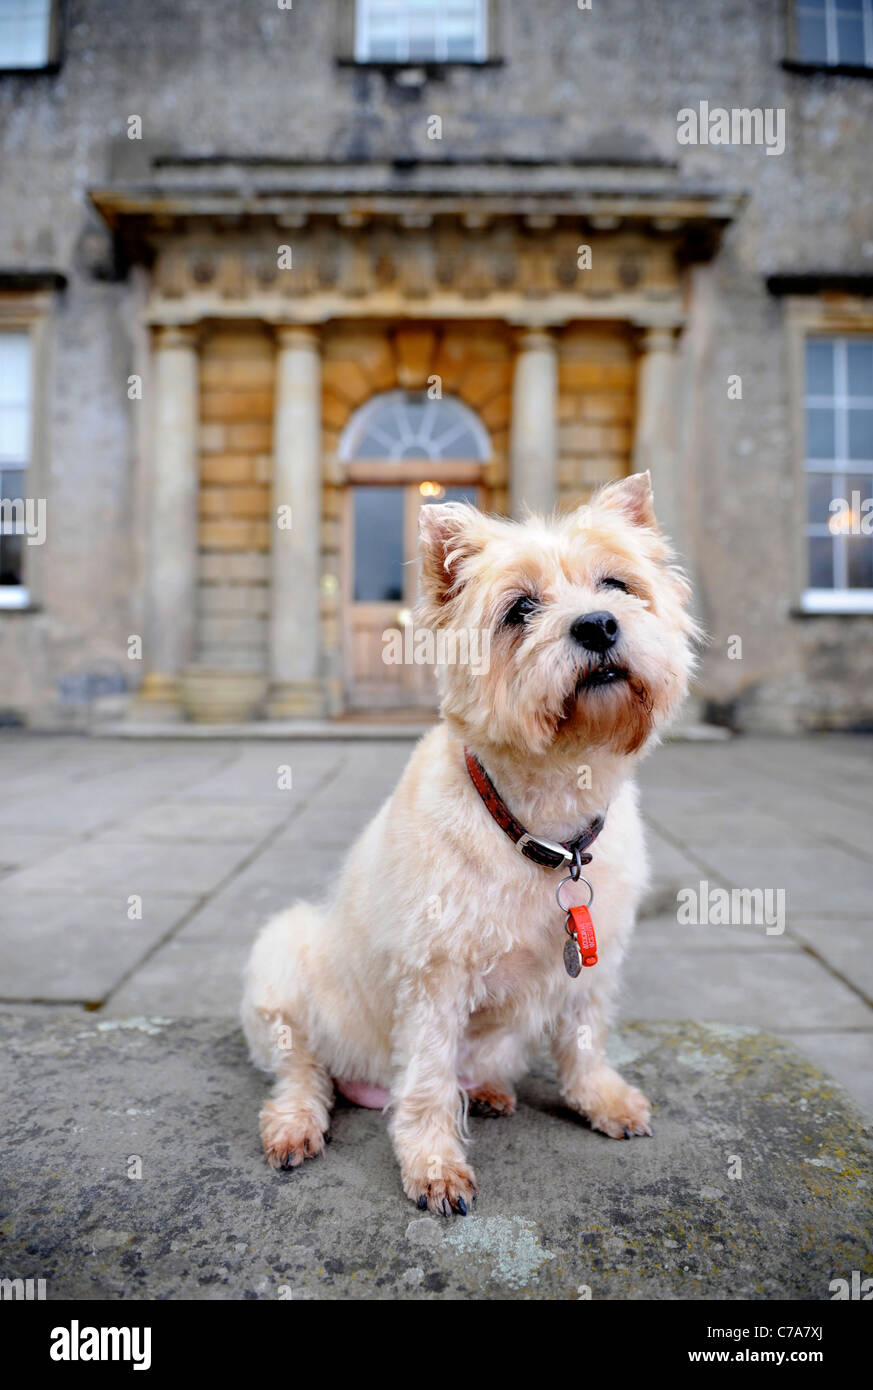 A Cairn Terrier dog residing at a hotel which welcomes pet dogs UK - Stock Image